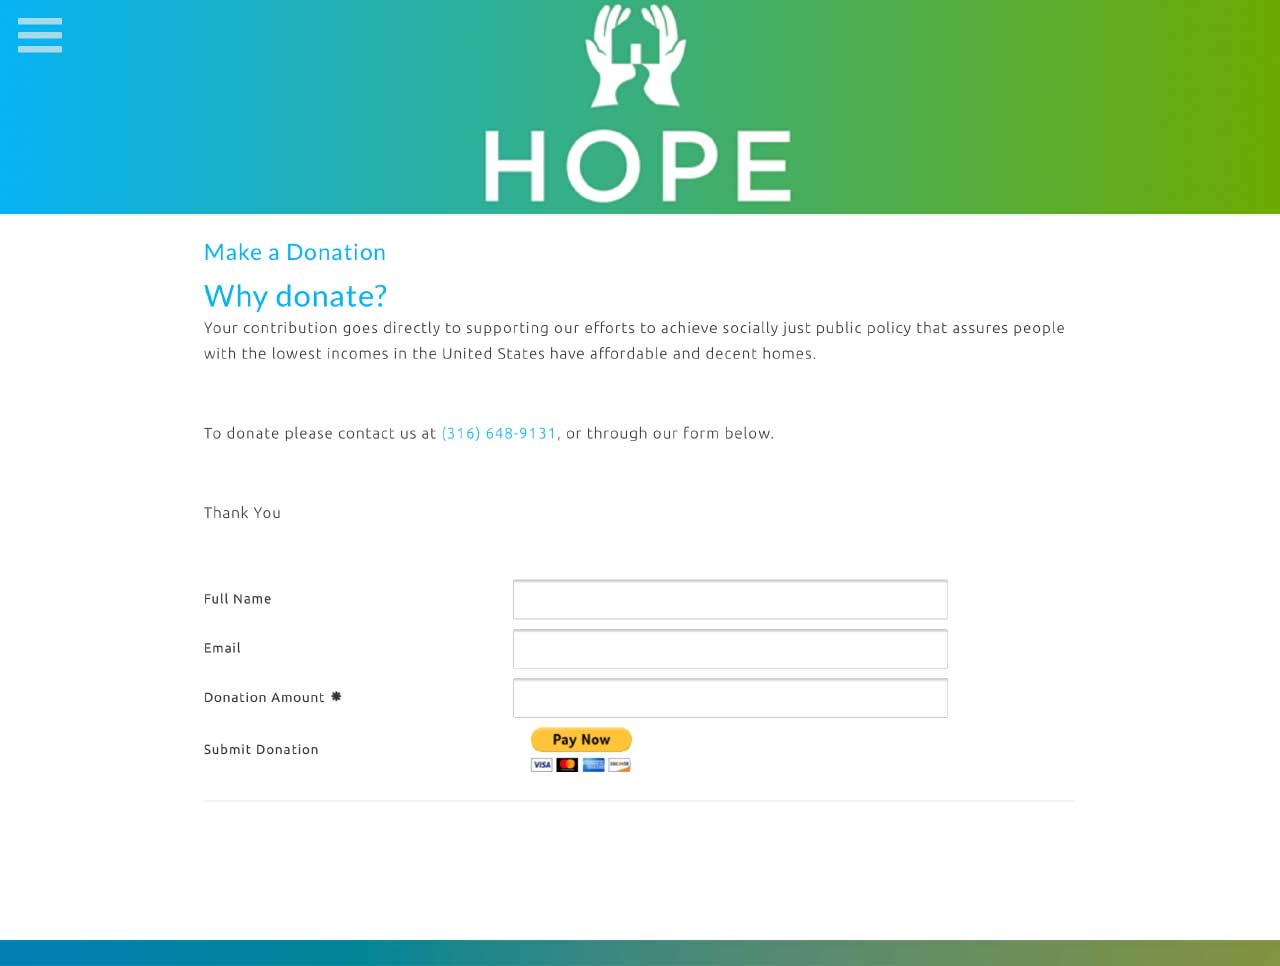 website HOPE IMG02